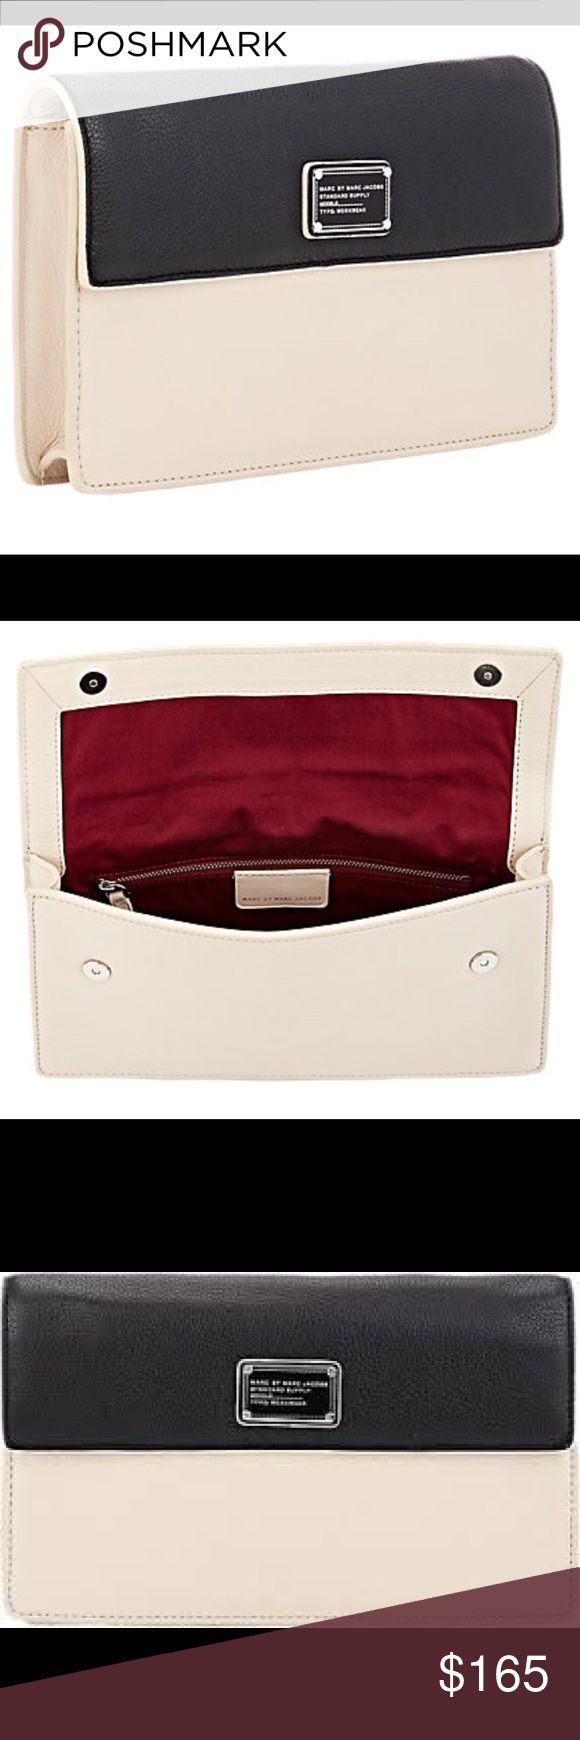 """Marc by Marc Jacobs multi color clutch bag MARC BY MARC JACOBS Nifty Gifty Jemma Clutch. New with tags. Details Marc by Marc Jacobs black and sand colorblock grained leather Nifty Gifty Jemma clutch.   Signature workwear plaque at flap front, slip pocket at back, polished silvertone hardware Lined with burgundy fabric; zip pocket at interior Dual magnetic-snap closure 6.25"""" height x 11.25"""" width x 1.50"""" depth (approximately) Imported Marc by Marc Jacobs Bags Clutches & Wristlets"""